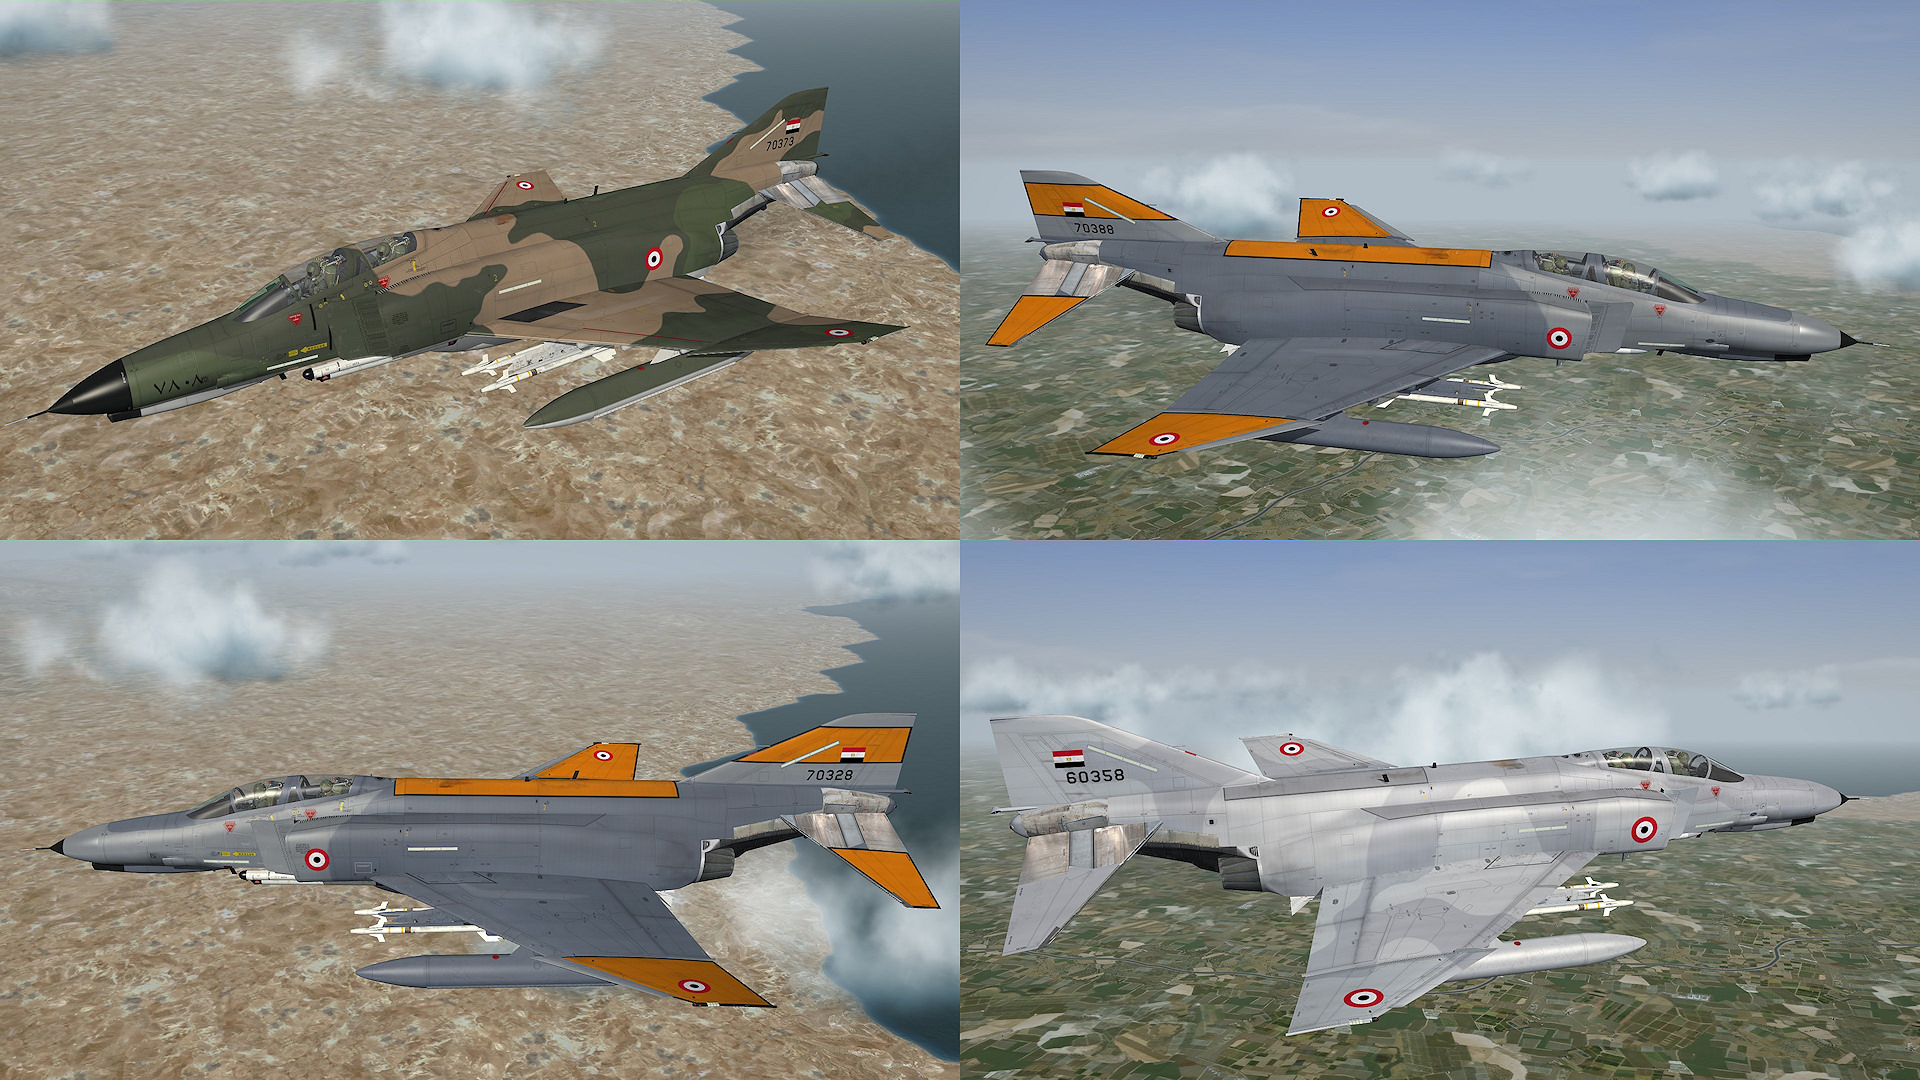 F-4E EAF - Thirdwire: Strike Fighters 2 Series - File